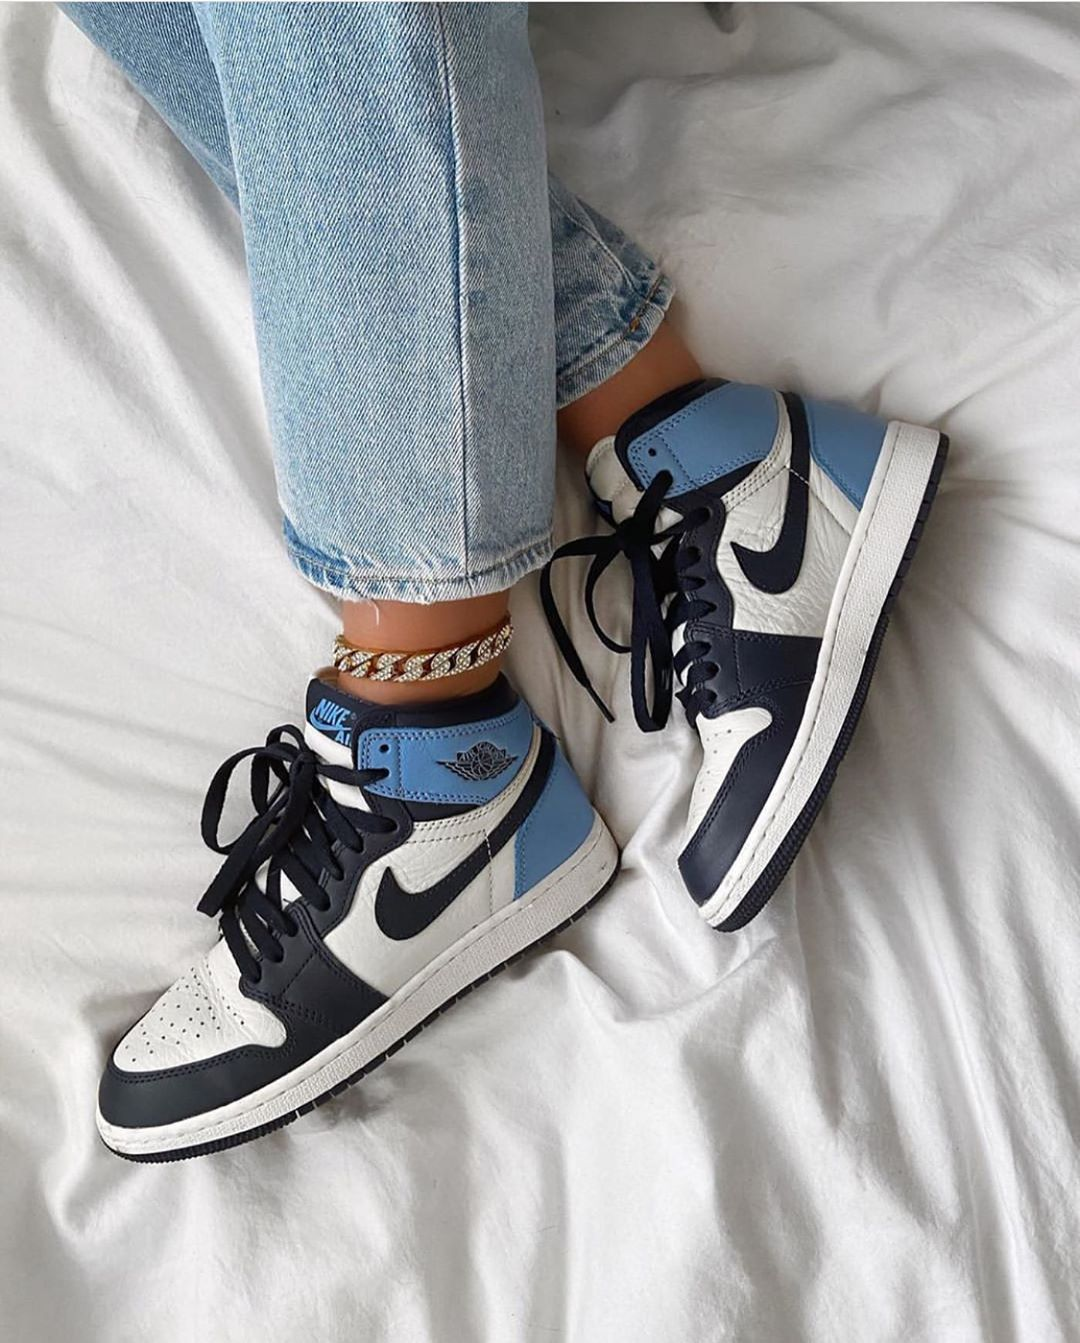 Jordan 1 Retro High Obsidian UNC in 2020 | Nike schuhe ...